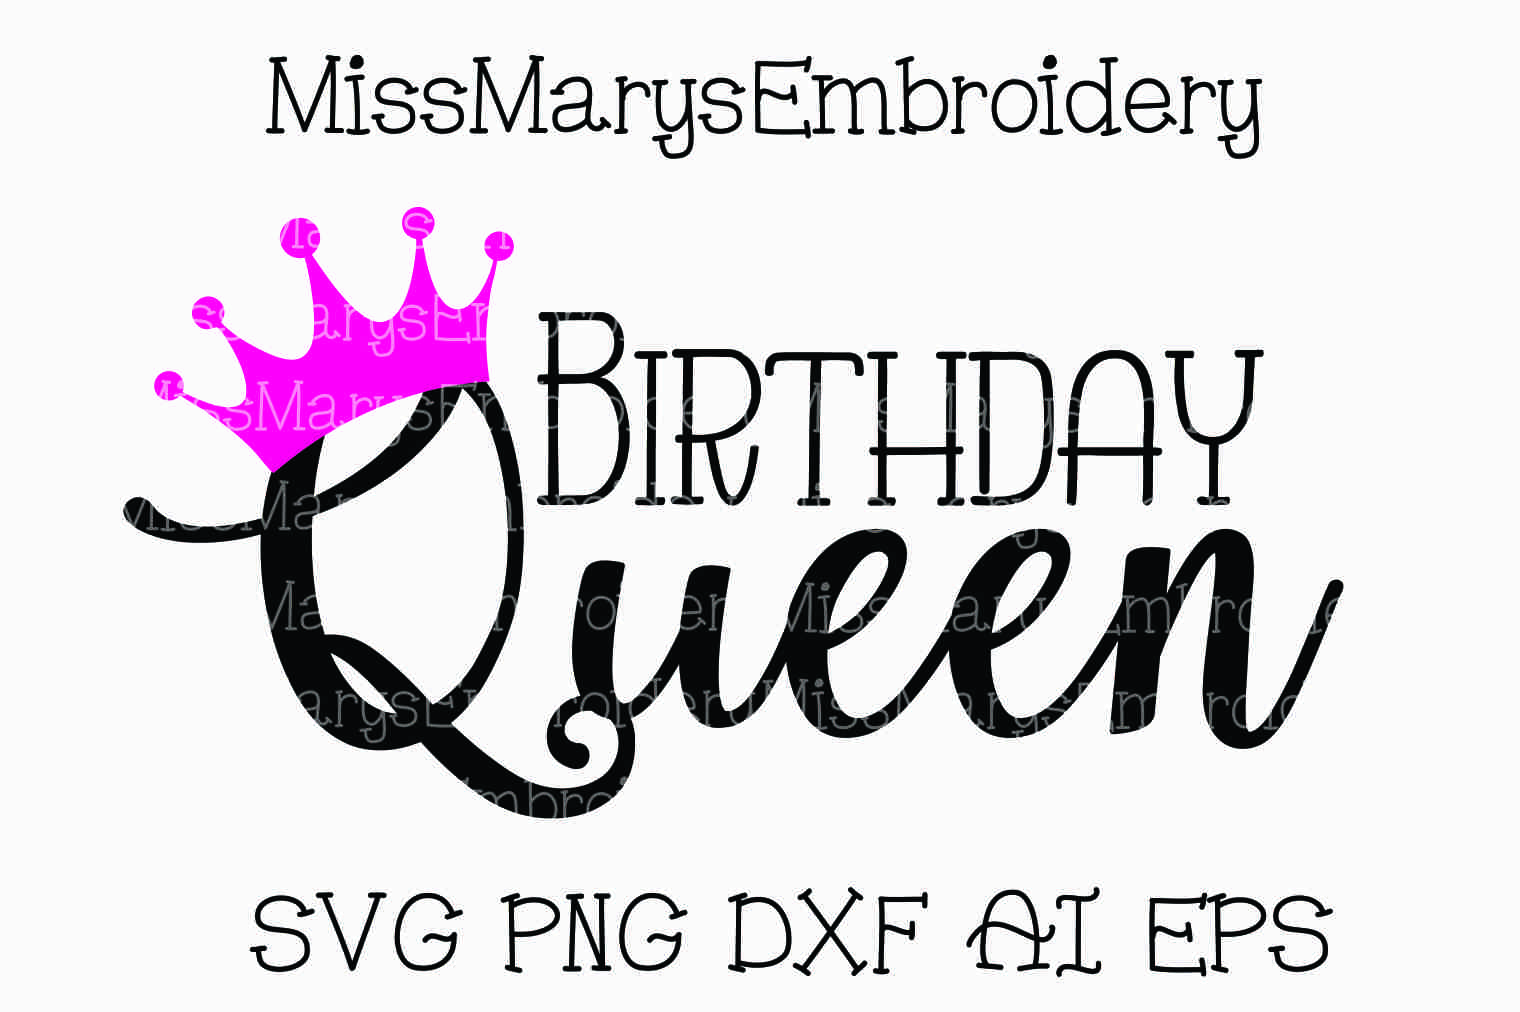 Birthday Queen Svg Cutting File Dxf Ai Eps